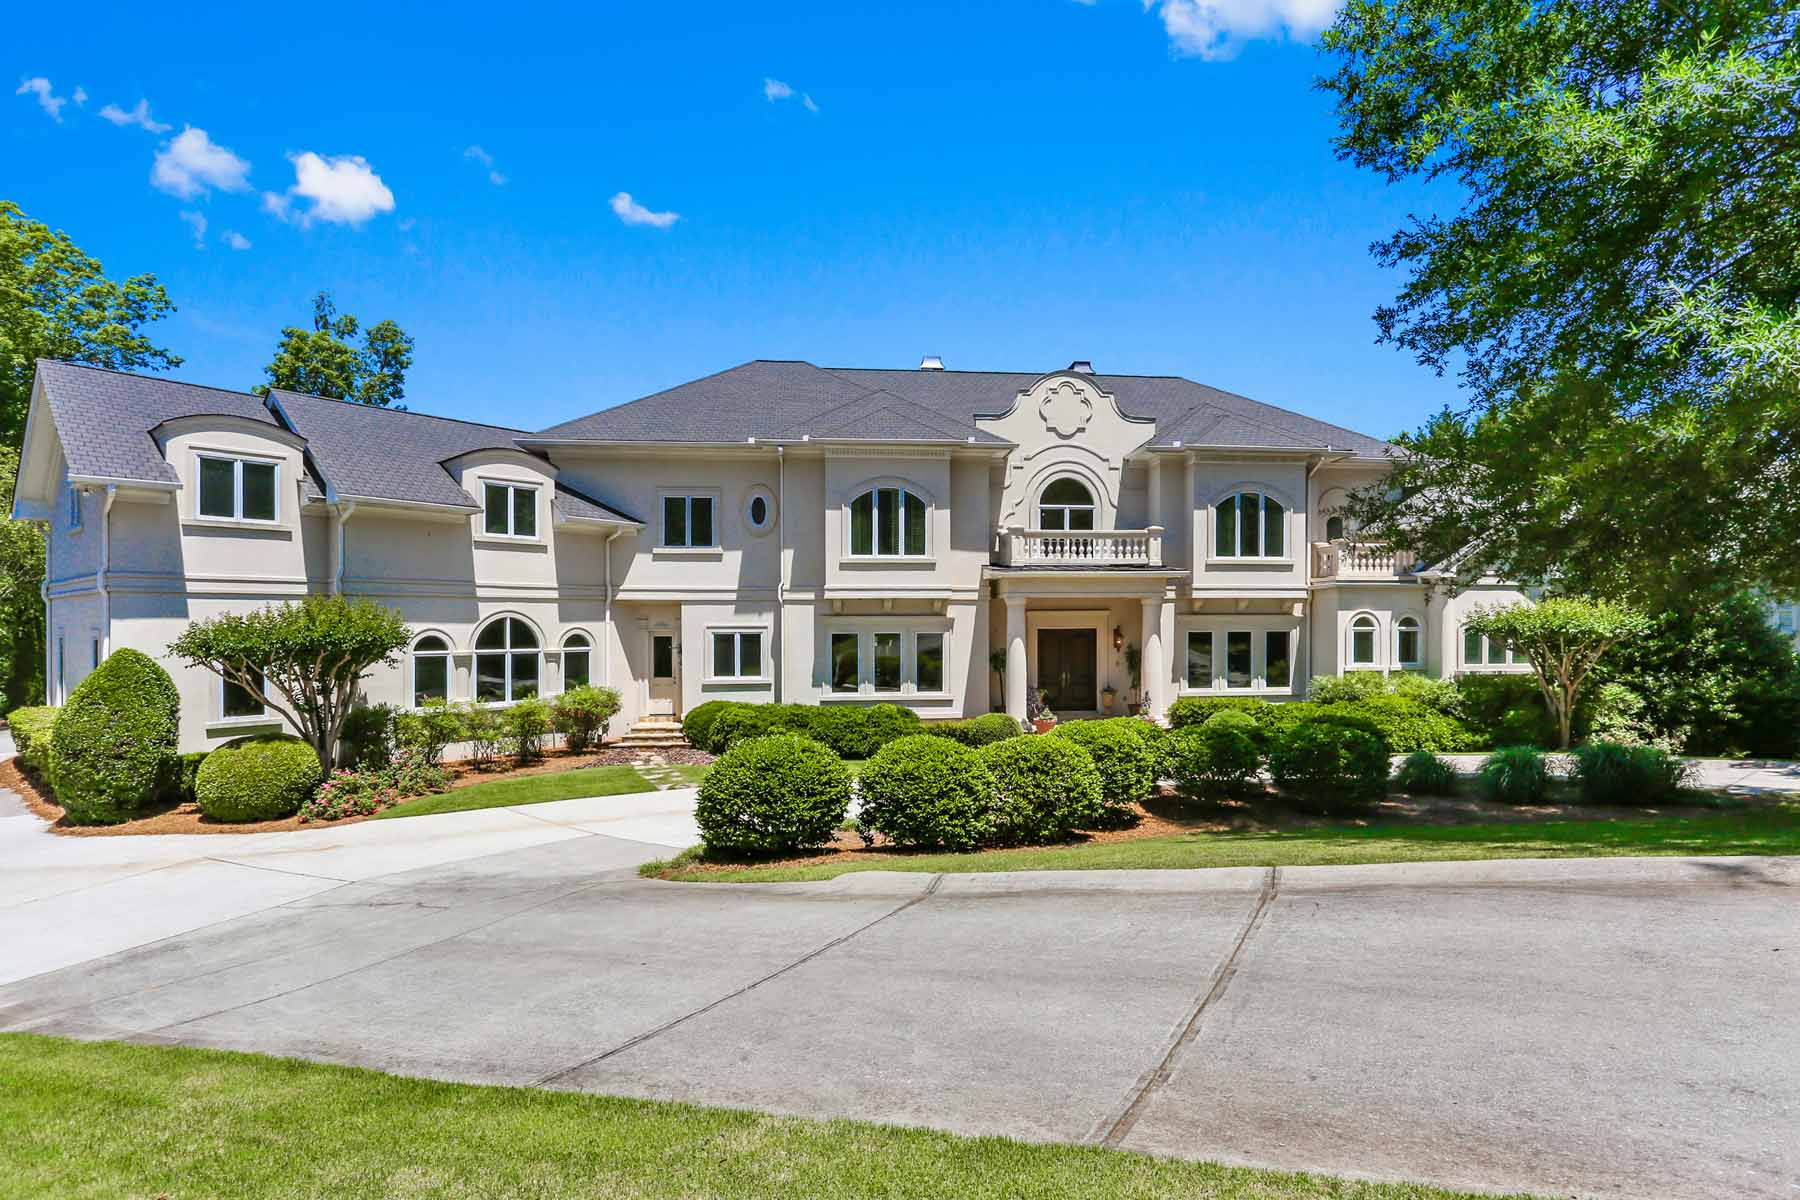 Enfamiljshus för Försäljning vid Magnificent Country Club Estate Home on Sprawling Property 1235 Stuart Ridge Alpharetta, Georgien 30022 Usa